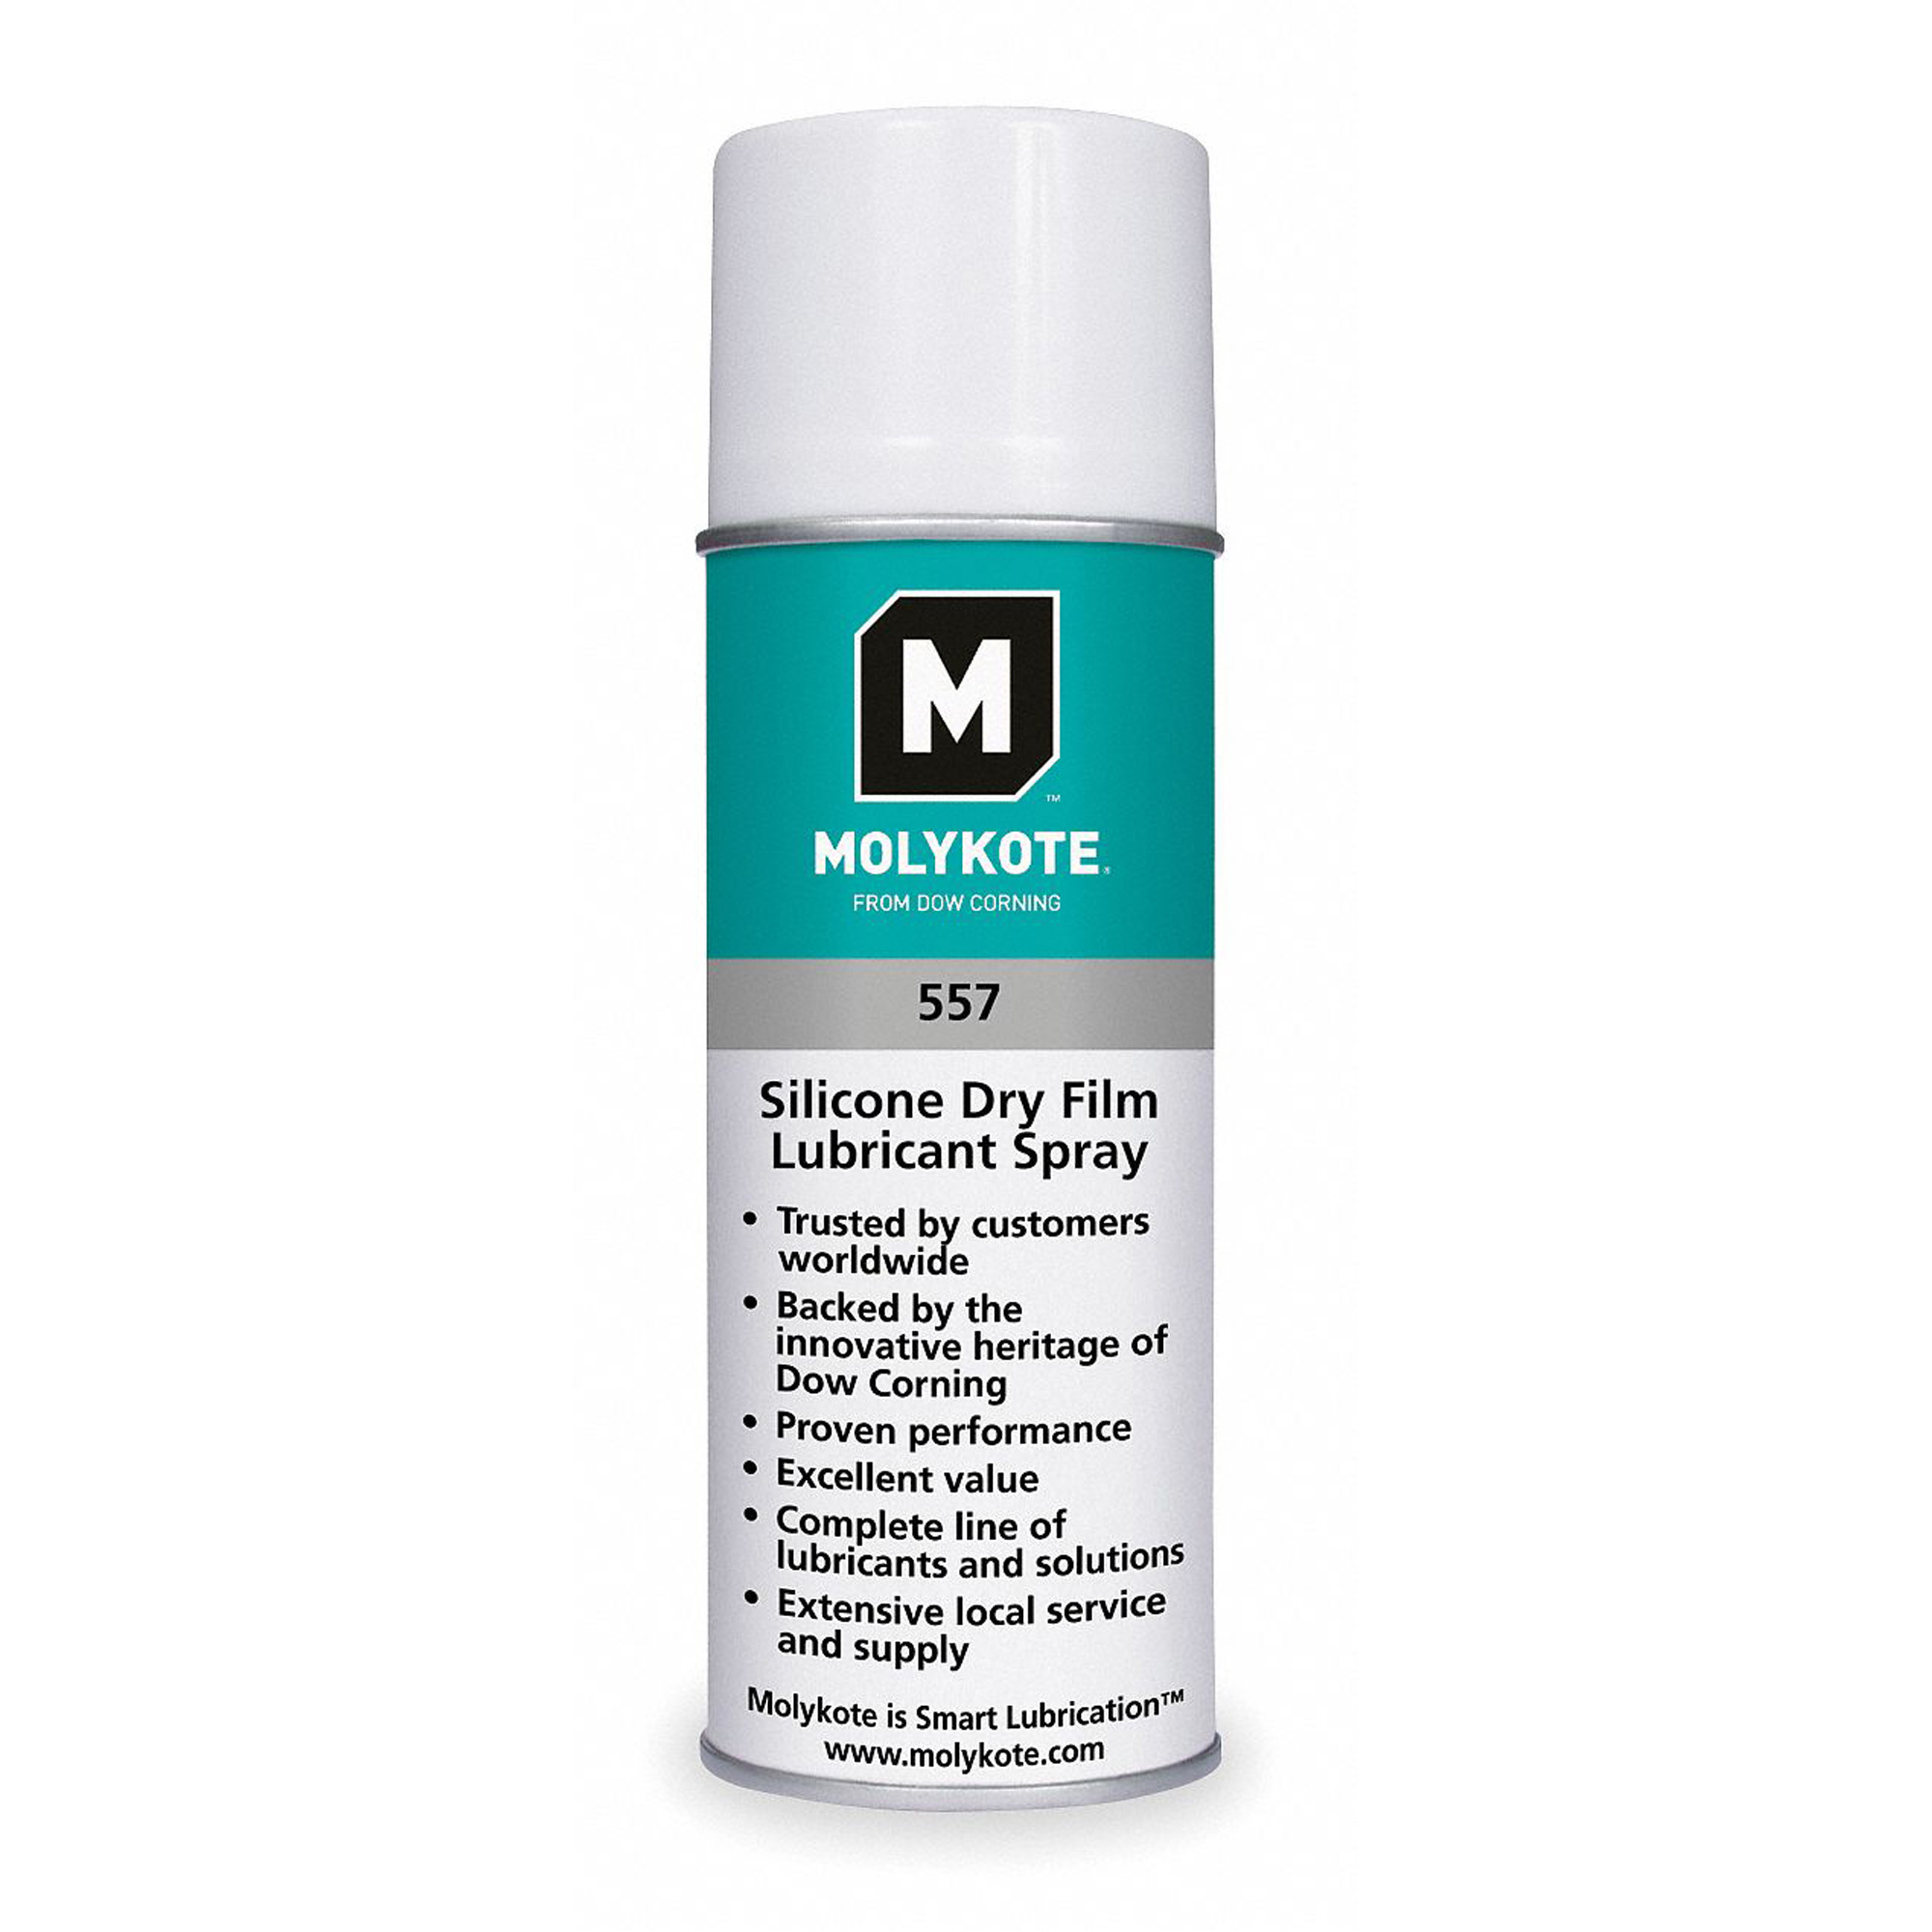 Molykote 557 Silicone Dry Film Lubricant